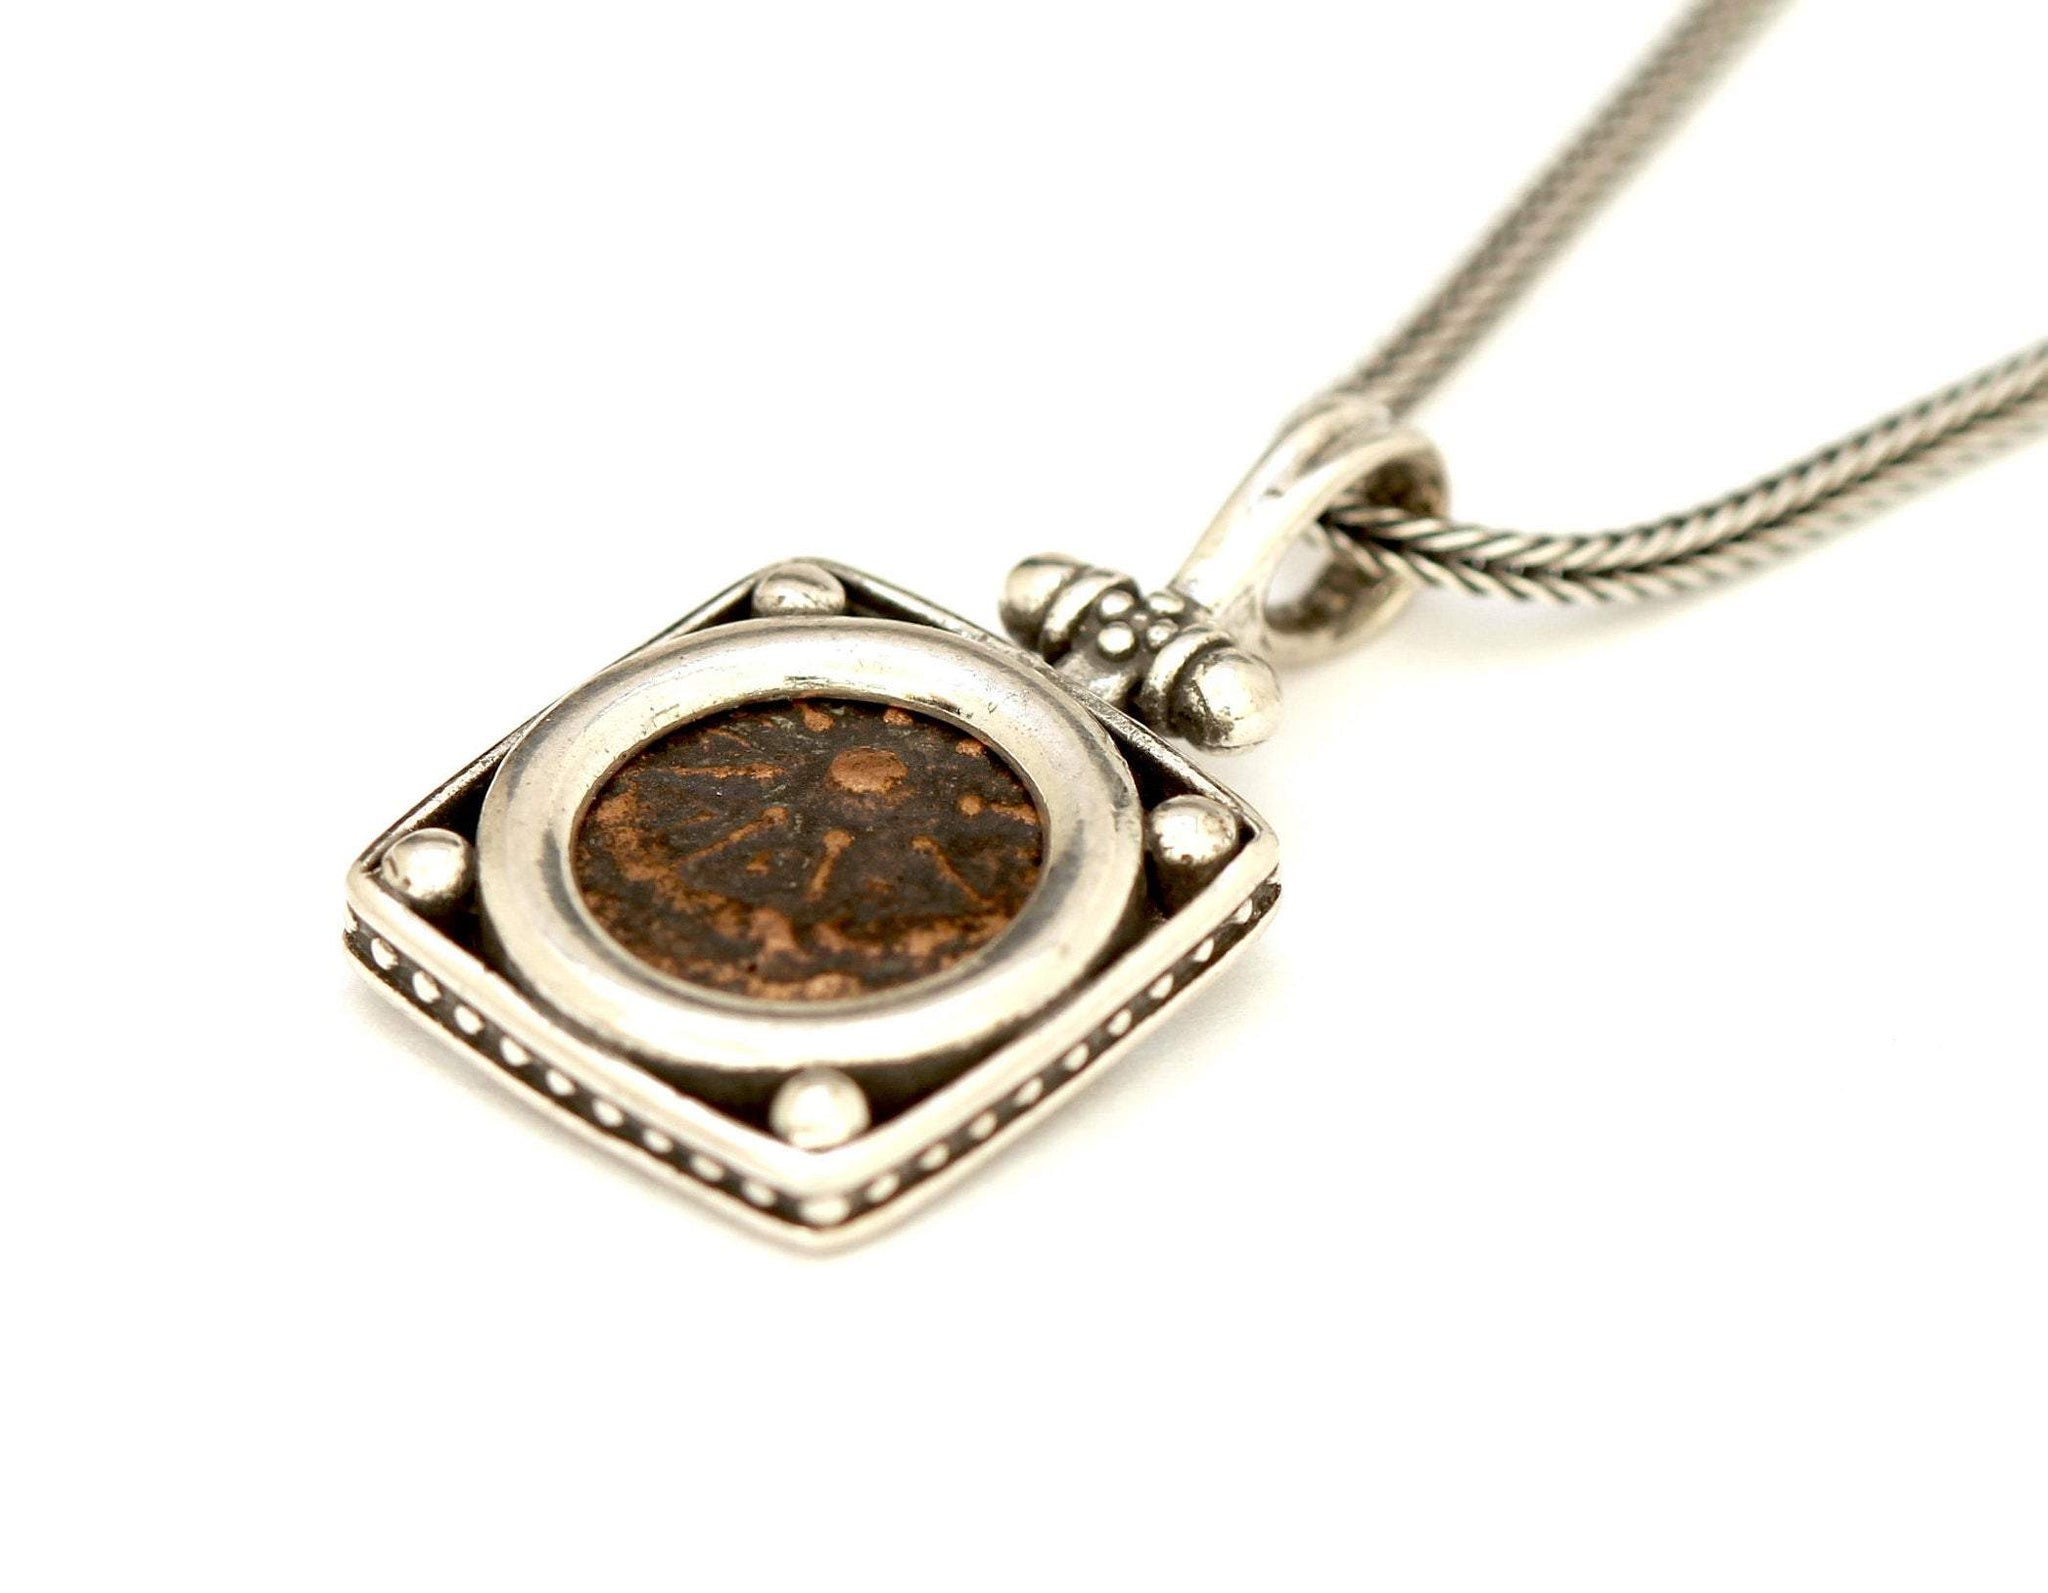 Widows Mite Silver Pendant, Genuine Ancient Coin, With Certificate 6492 - Erez Ancient Coin Jewelry, ancient coin jewelry, men jewelry, genuine ancient coins, made in the US